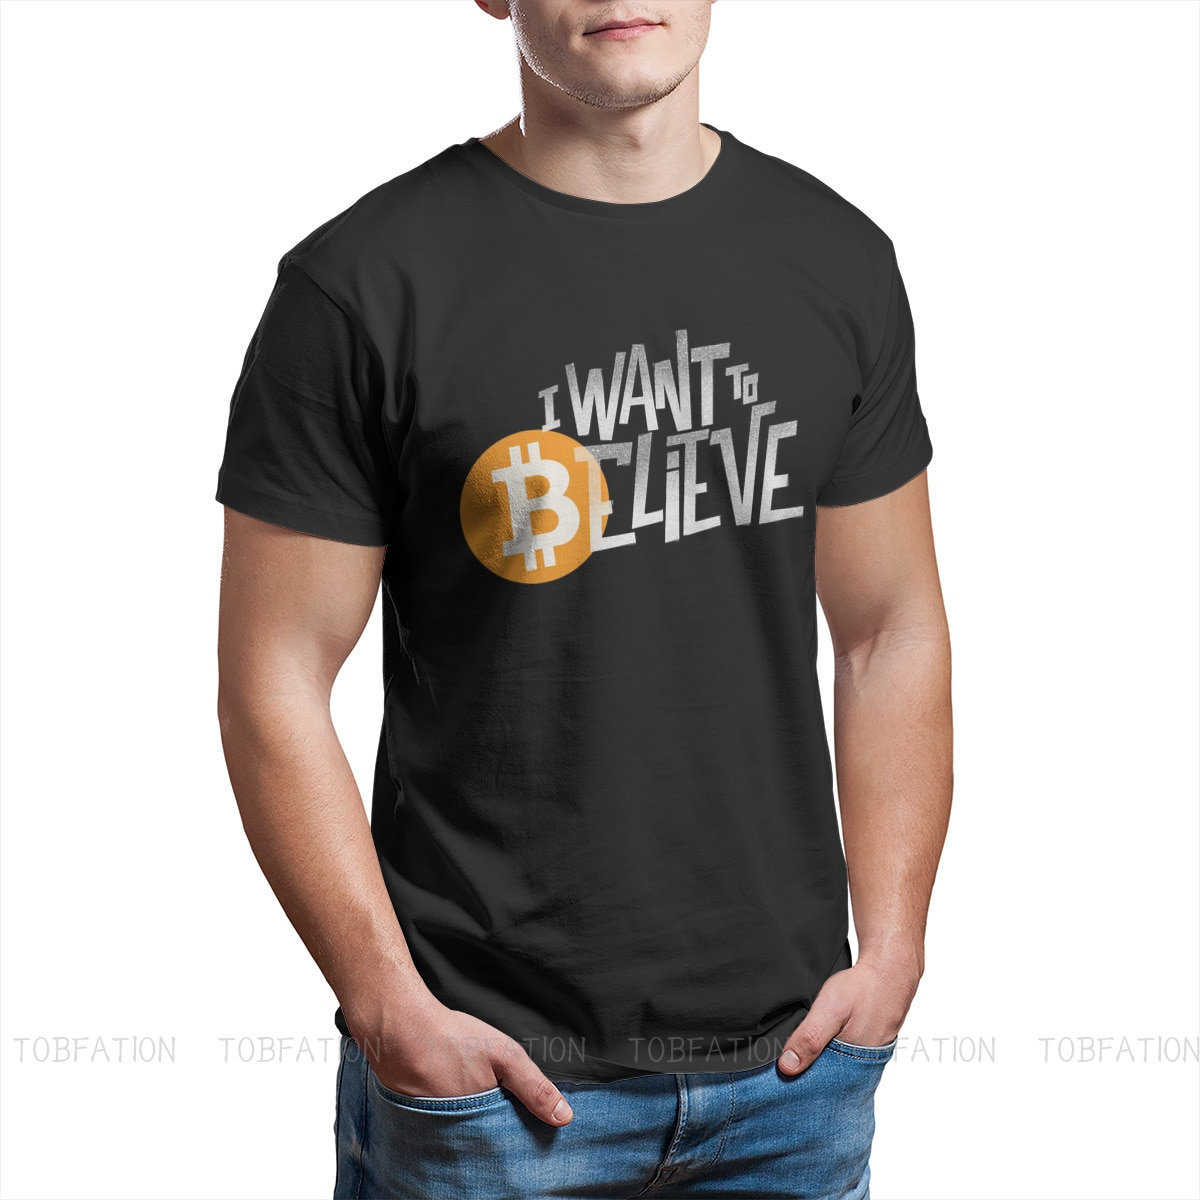 Bitcoin Cryptocurrency Miners Meme TShirt for Men I Want to Believe Black Basic Summer Tee T Shirt Novelty New Design Loose